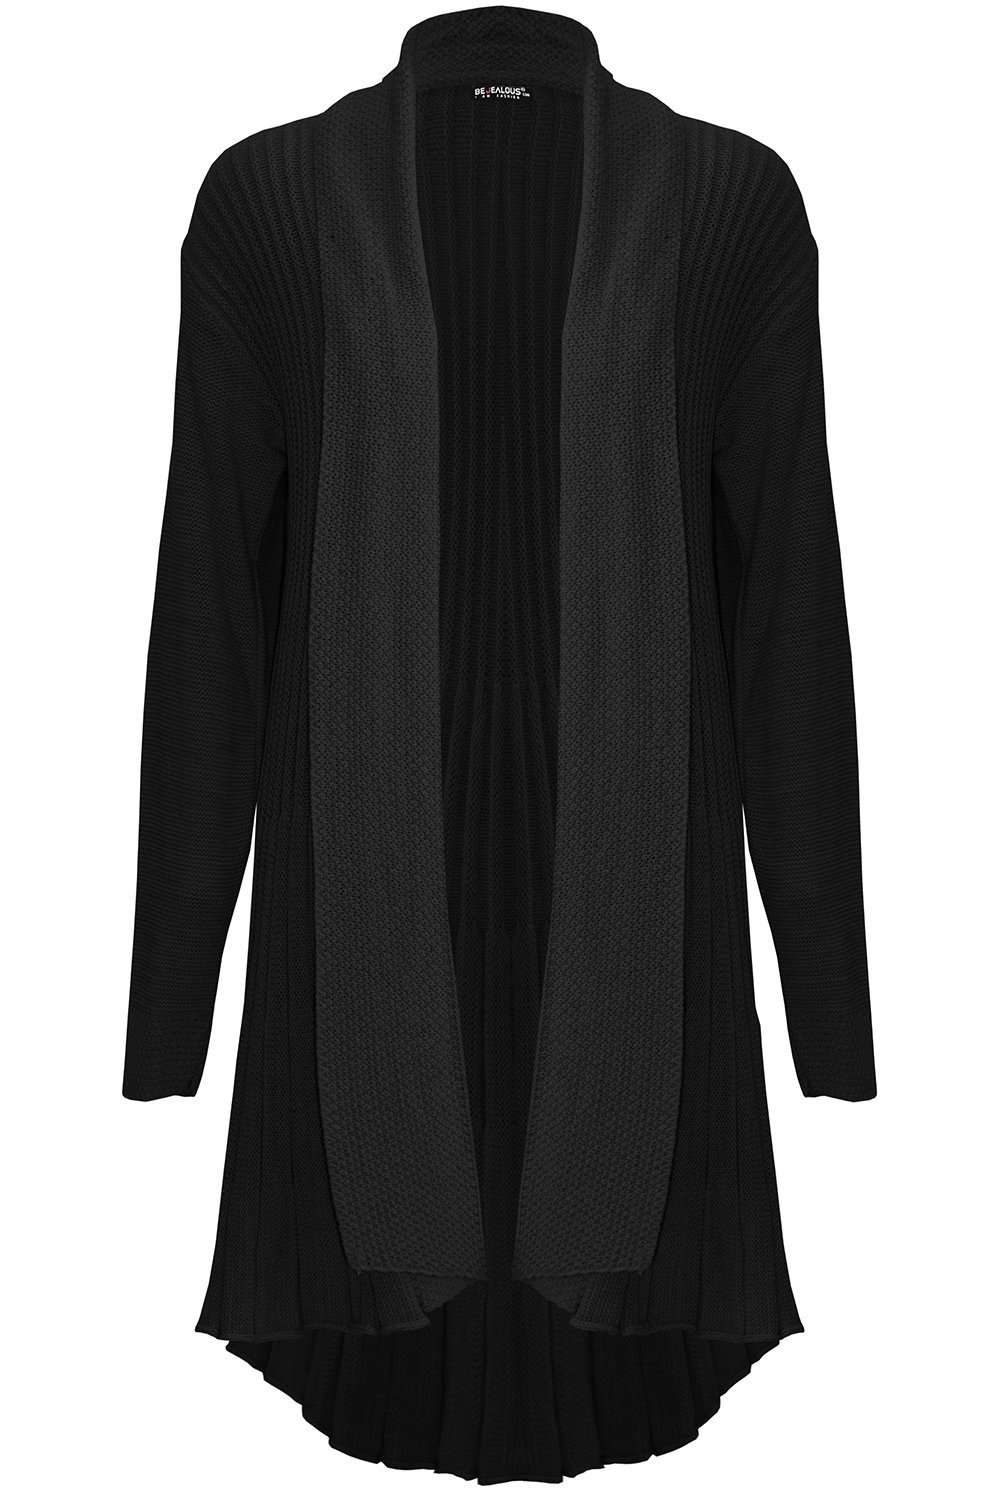 Carly Long Sleeve Pleated Knitted Cardigan - bejealous-com